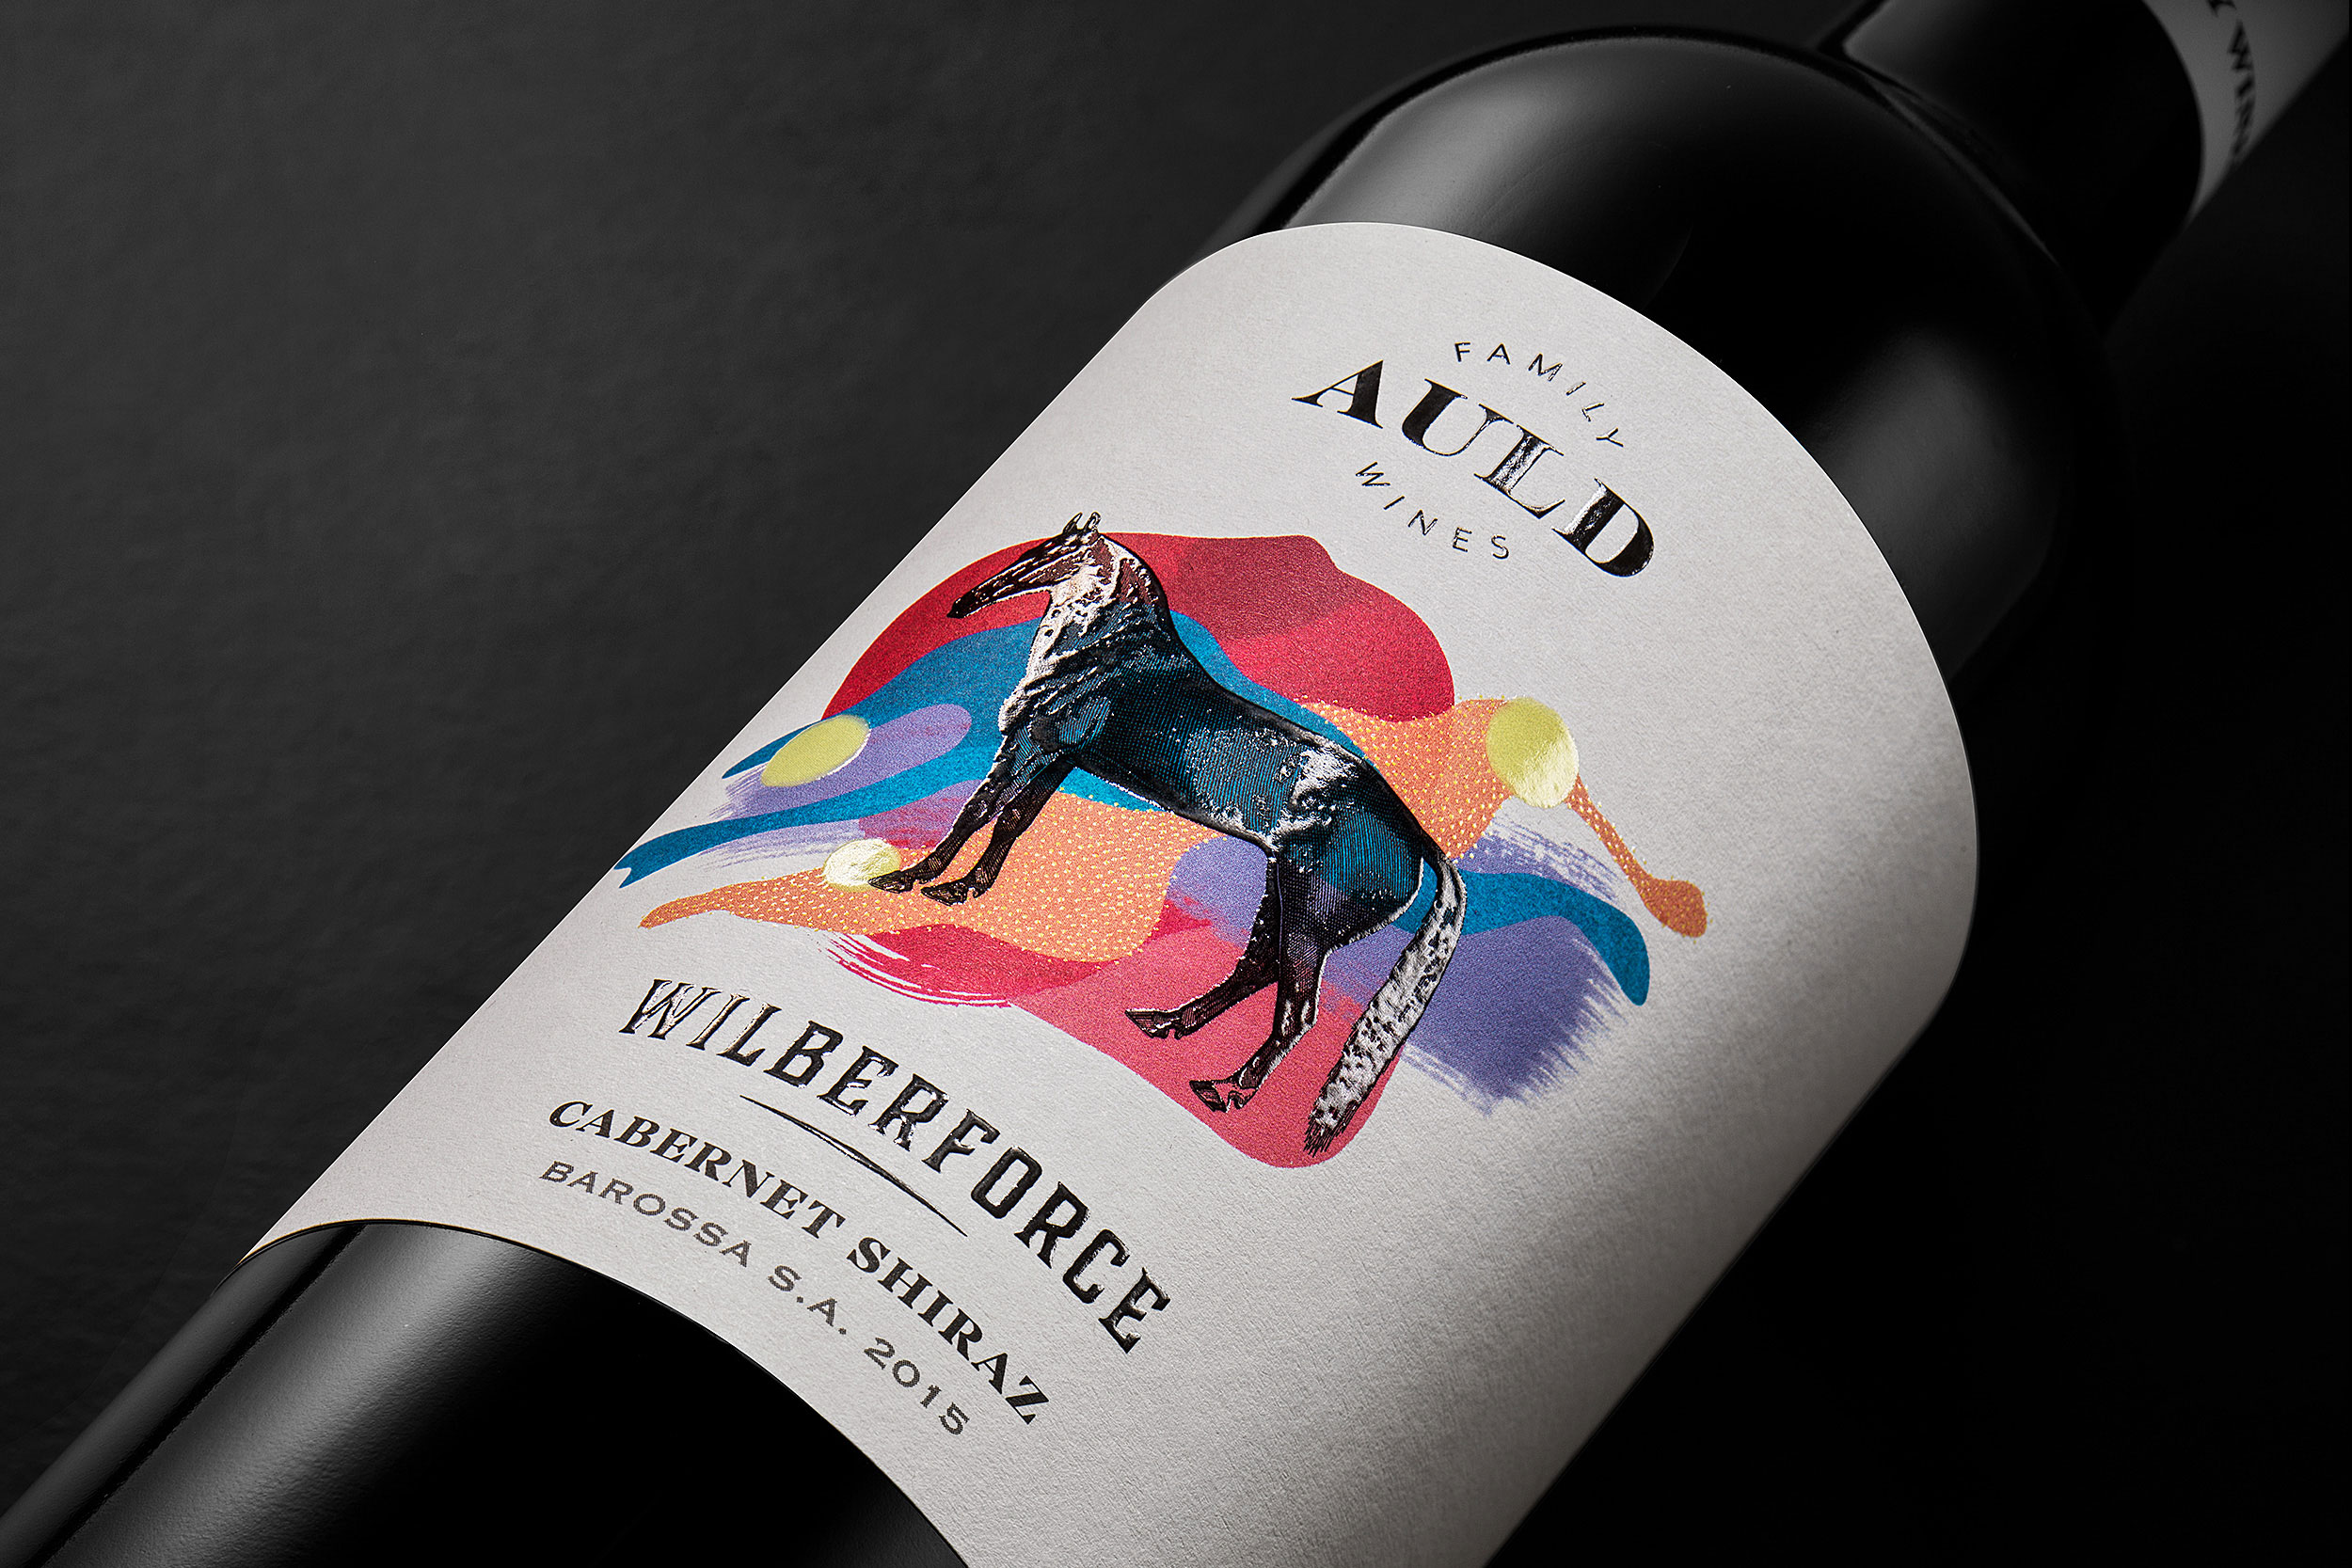 Auld Family Wines From The Iconic Auldana Vineyard, SA Paying Homage To The Family History